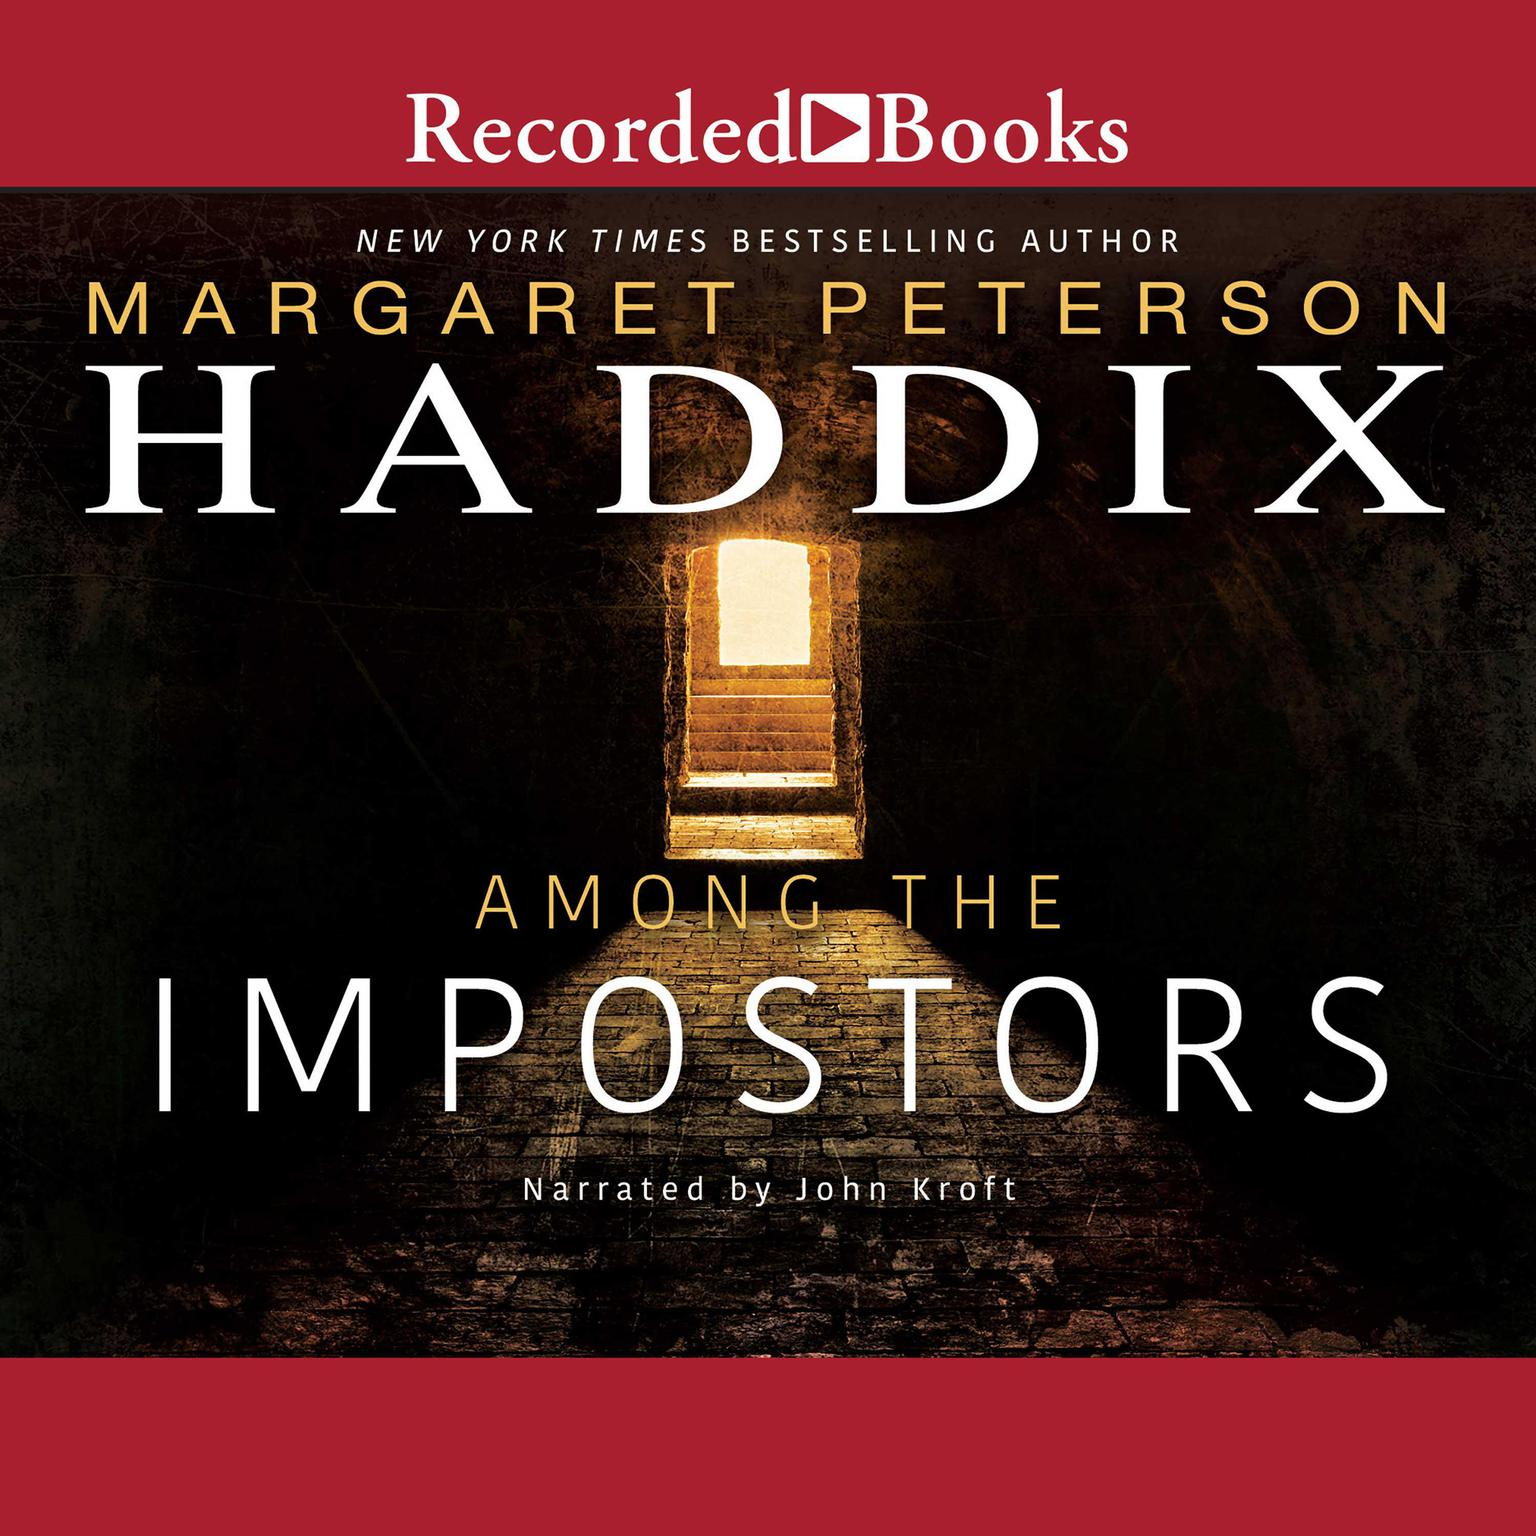 Imposter audiobook for android | imposter streaming audio book.